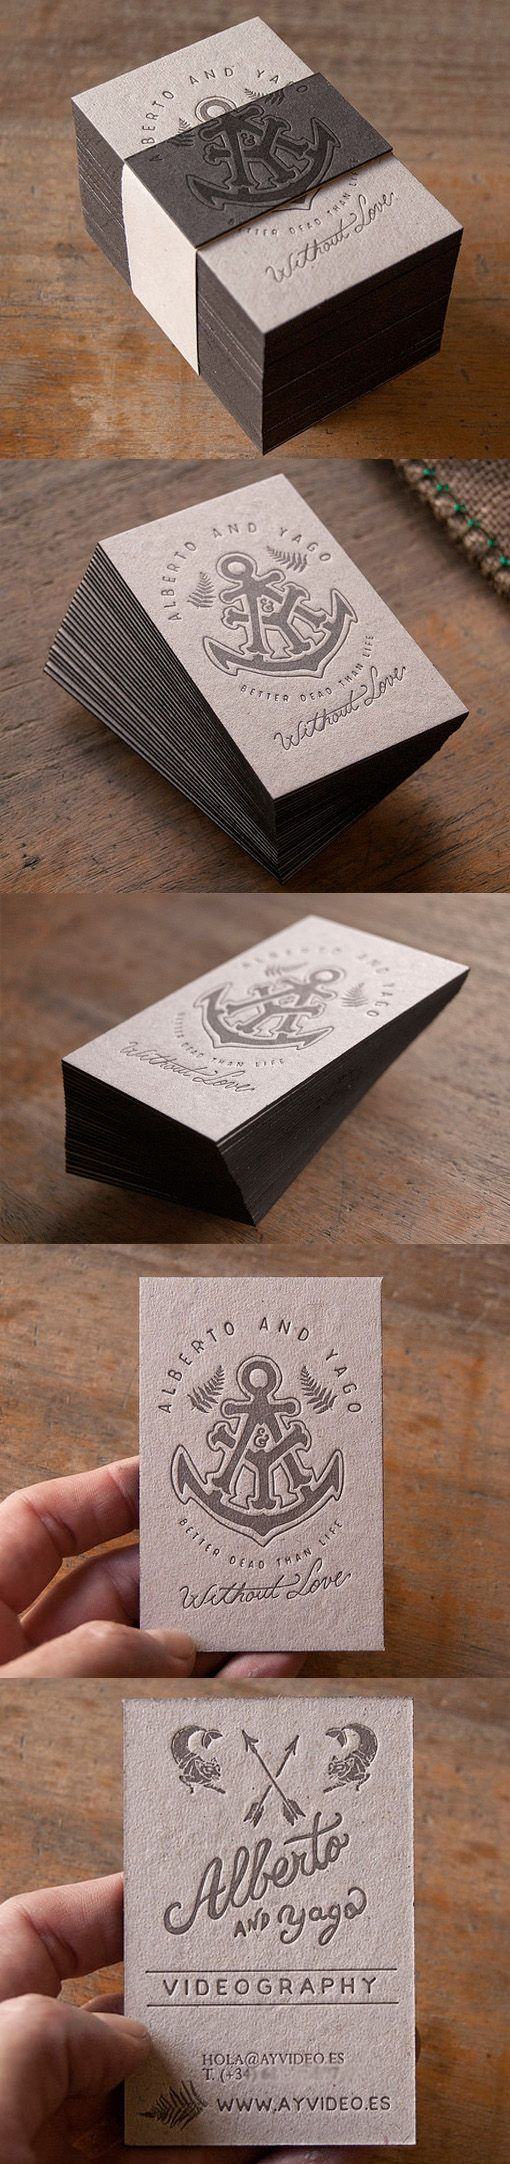 212 best Business cards images on Pinterest | Business cards ...